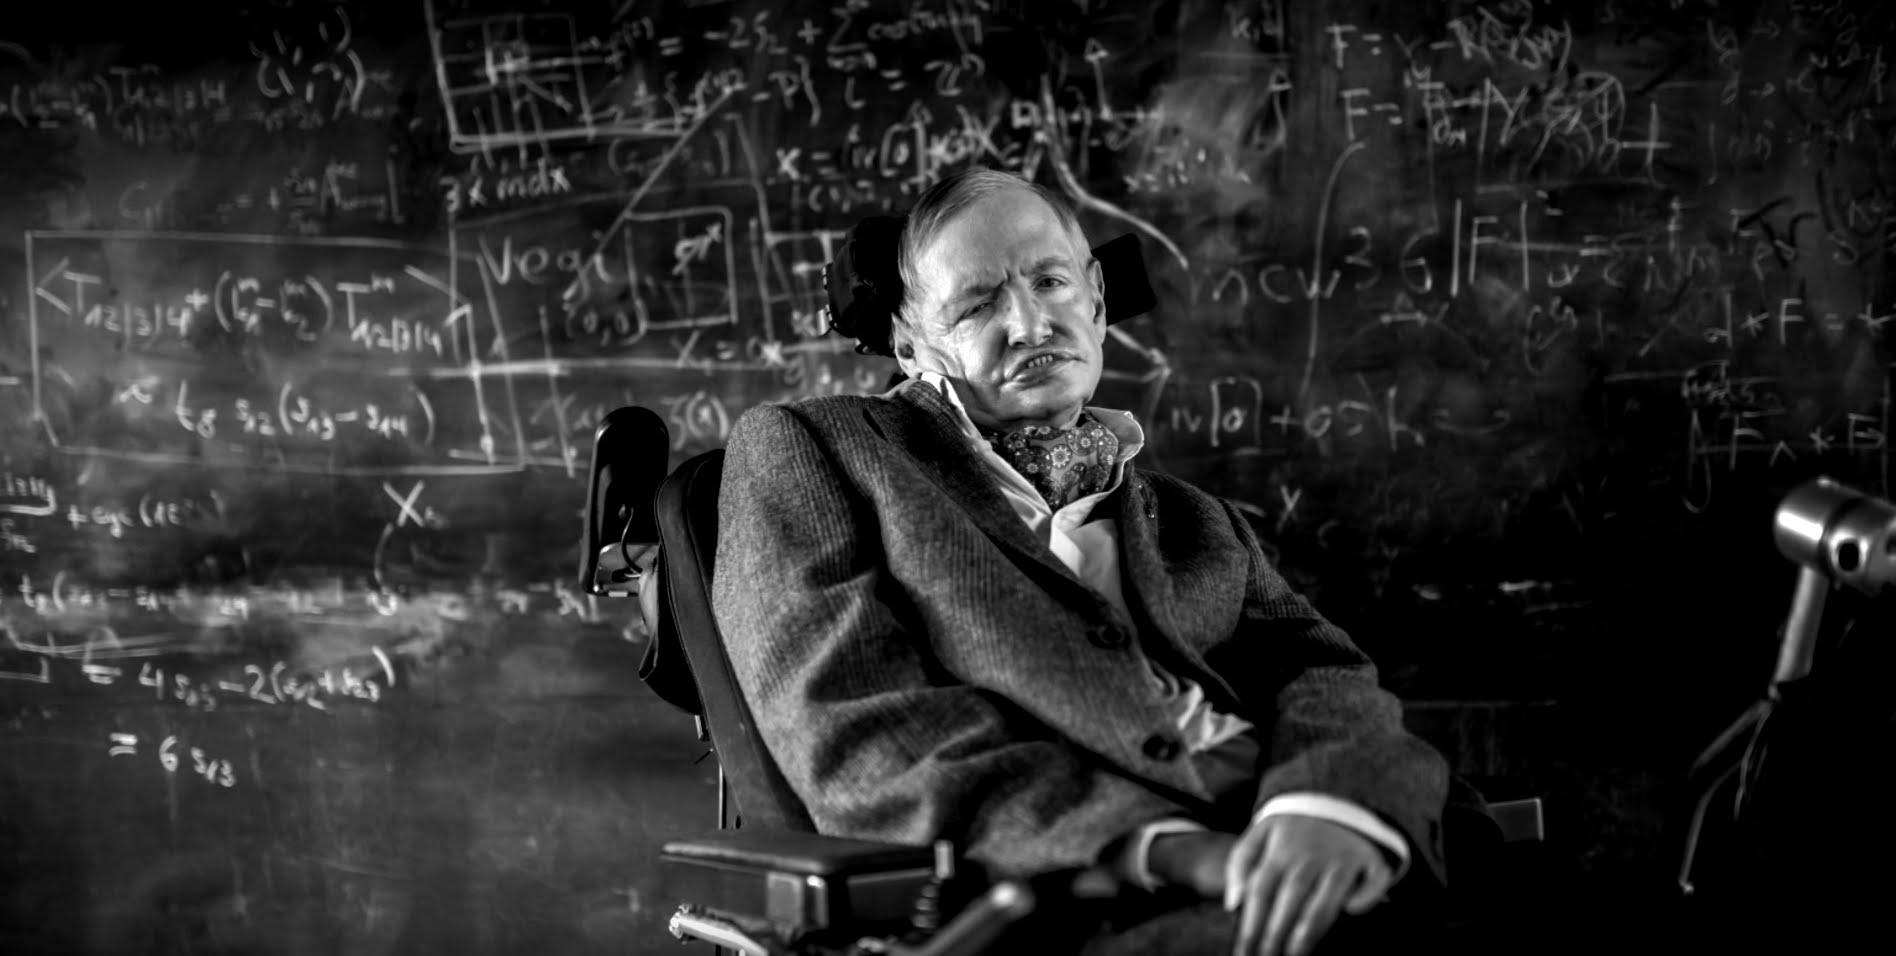 a short biography of stephen hawking Stephen hawking fact 1: stephen hawking was born in oxford, england on january 8, 1942, exactly 300 years following the death of the famous scientist, galileo galilei stephen hawking fact 2: he is a theoretical physicist, specializing in the fields of general relativity and quantum gravity.